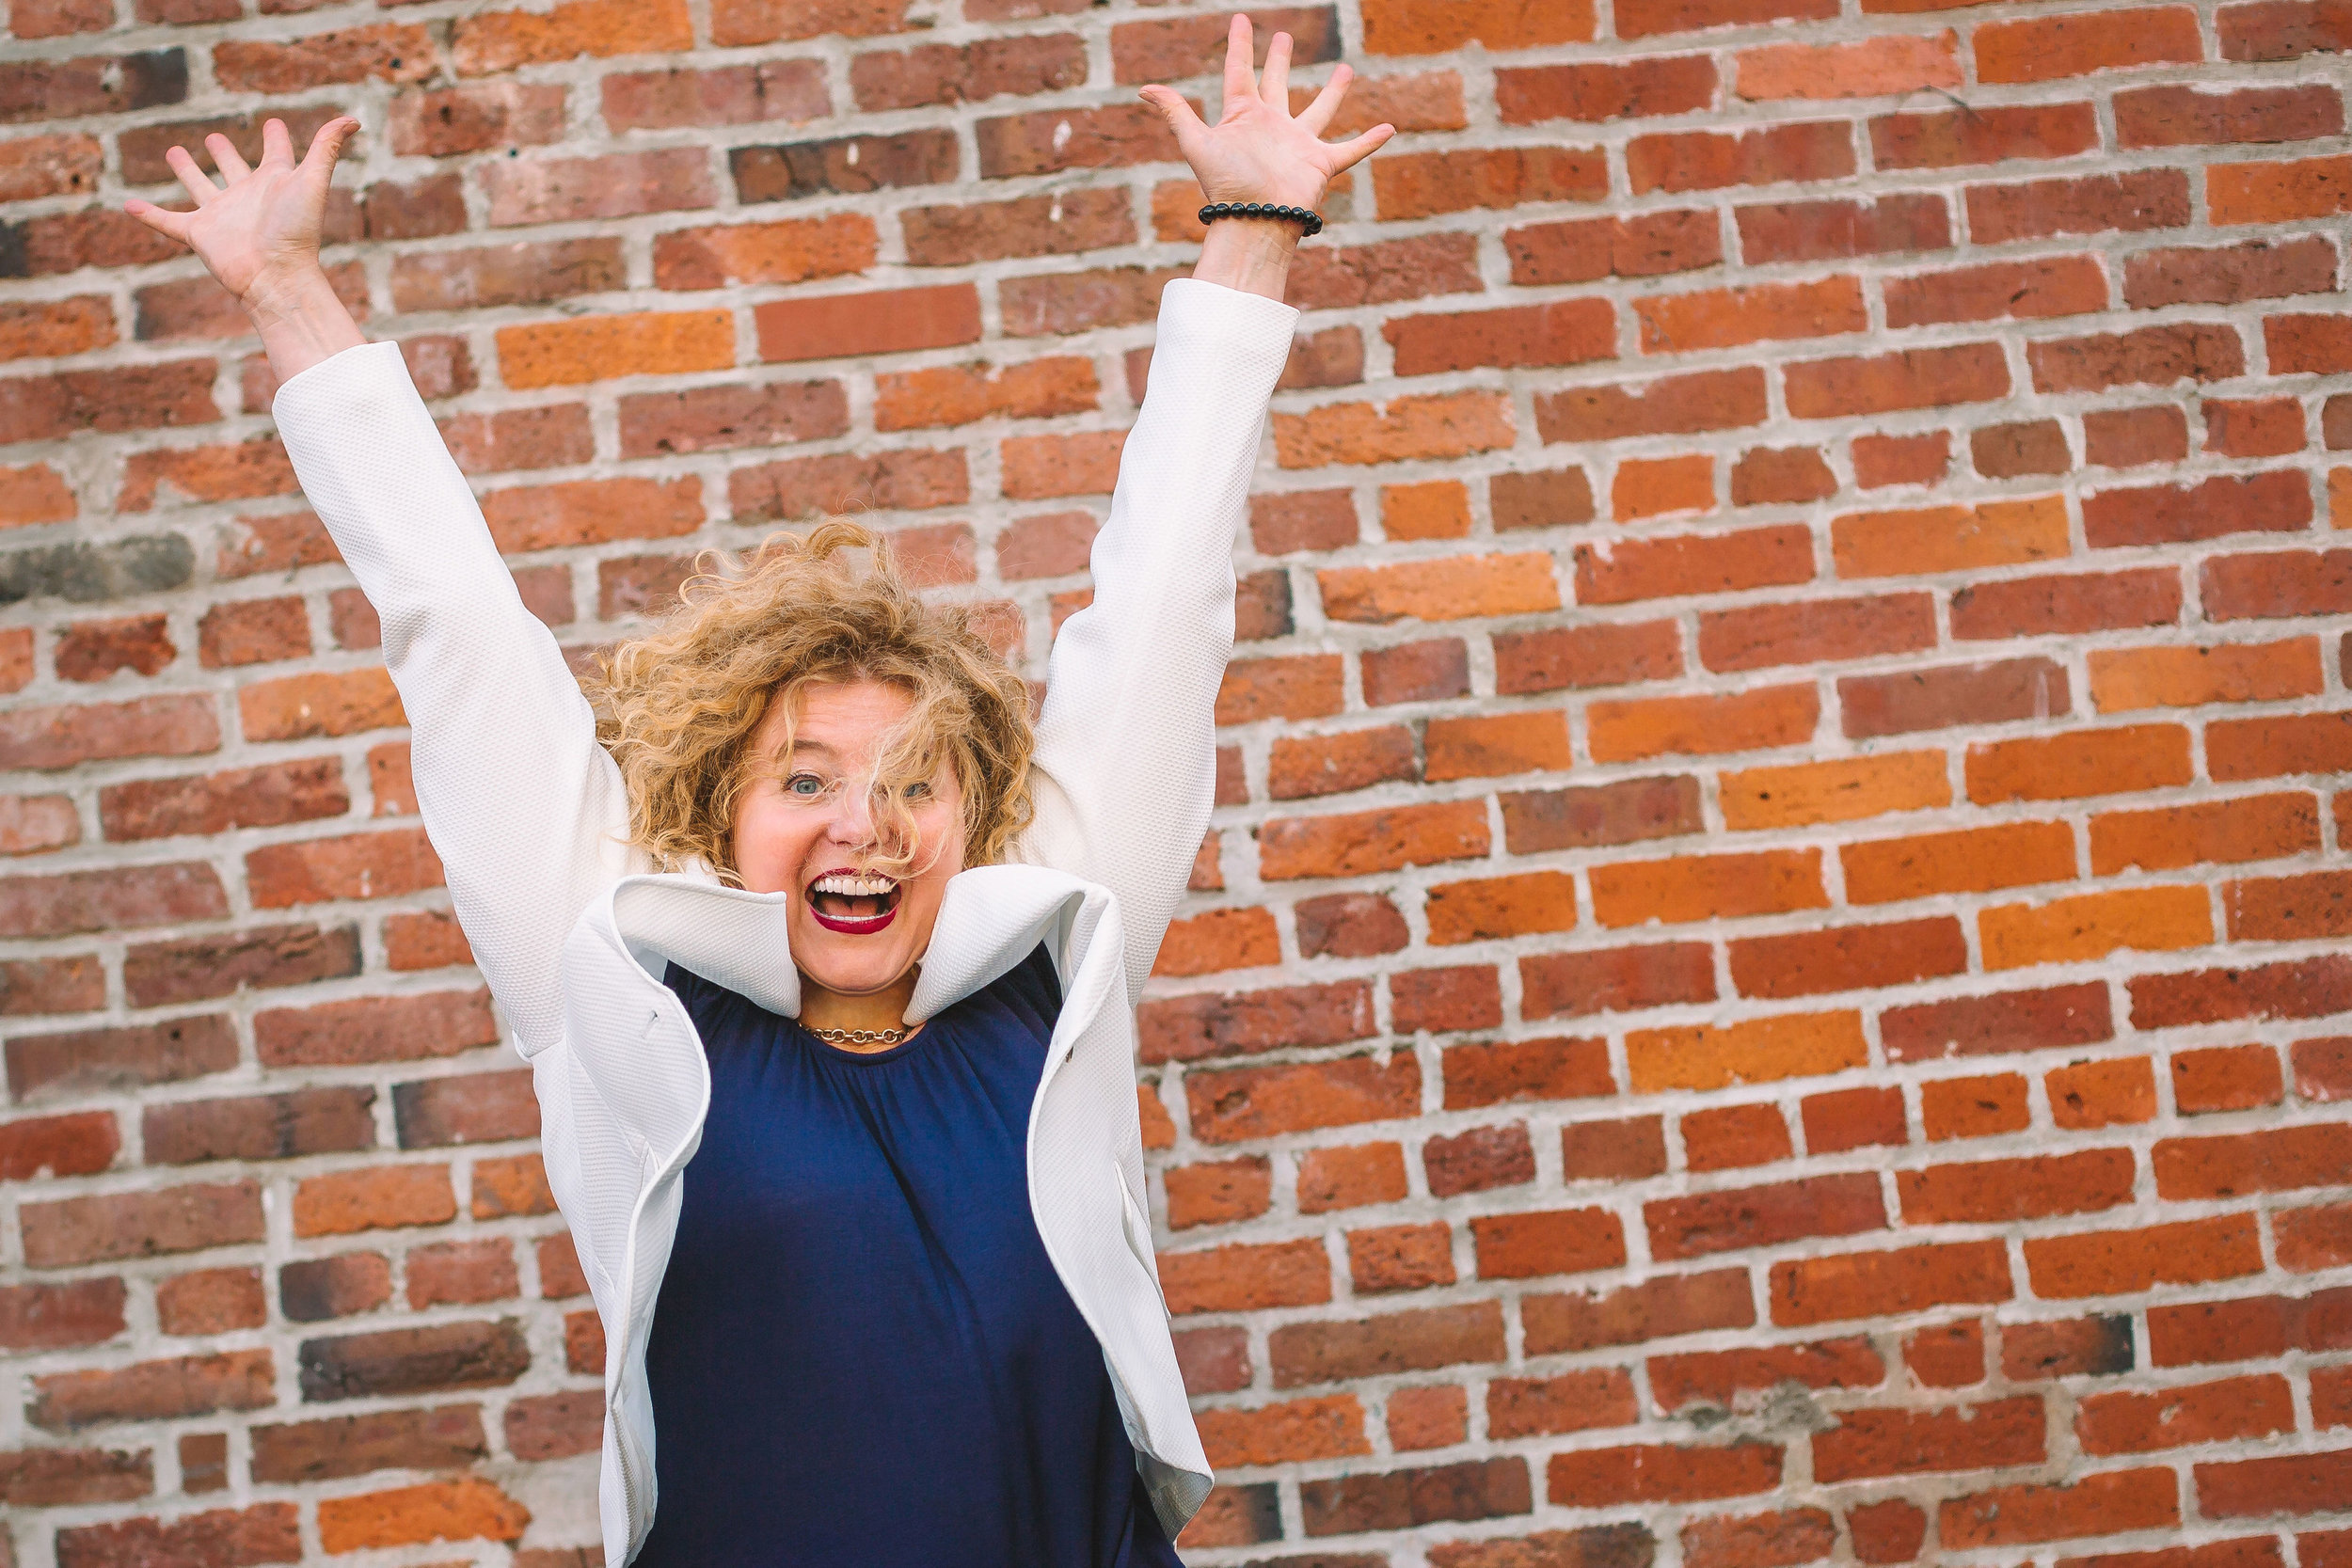 Transformational E-Coaching - Kick start your Mojo Strategically Get Out of Your Own Way and Start Creating the Life You Want in 7 days.Get started for only $297!